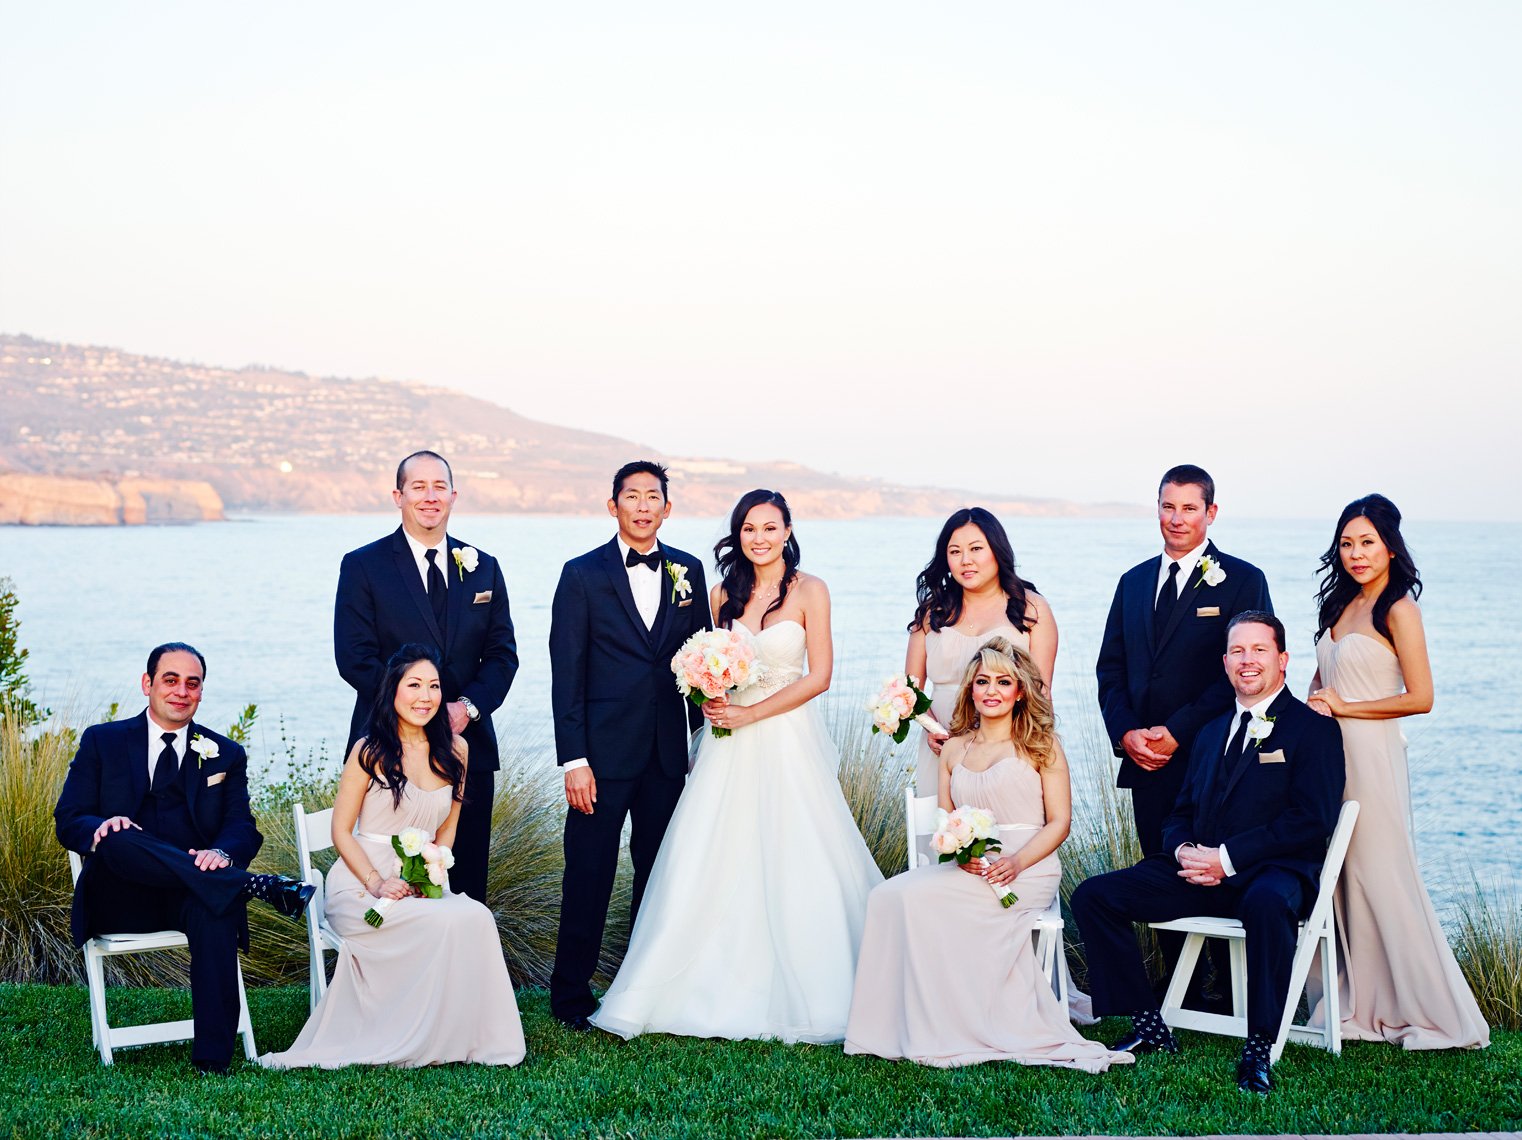 Bridal party poses for photographer at Terranea Resort in Rancho Palos Verdes, California